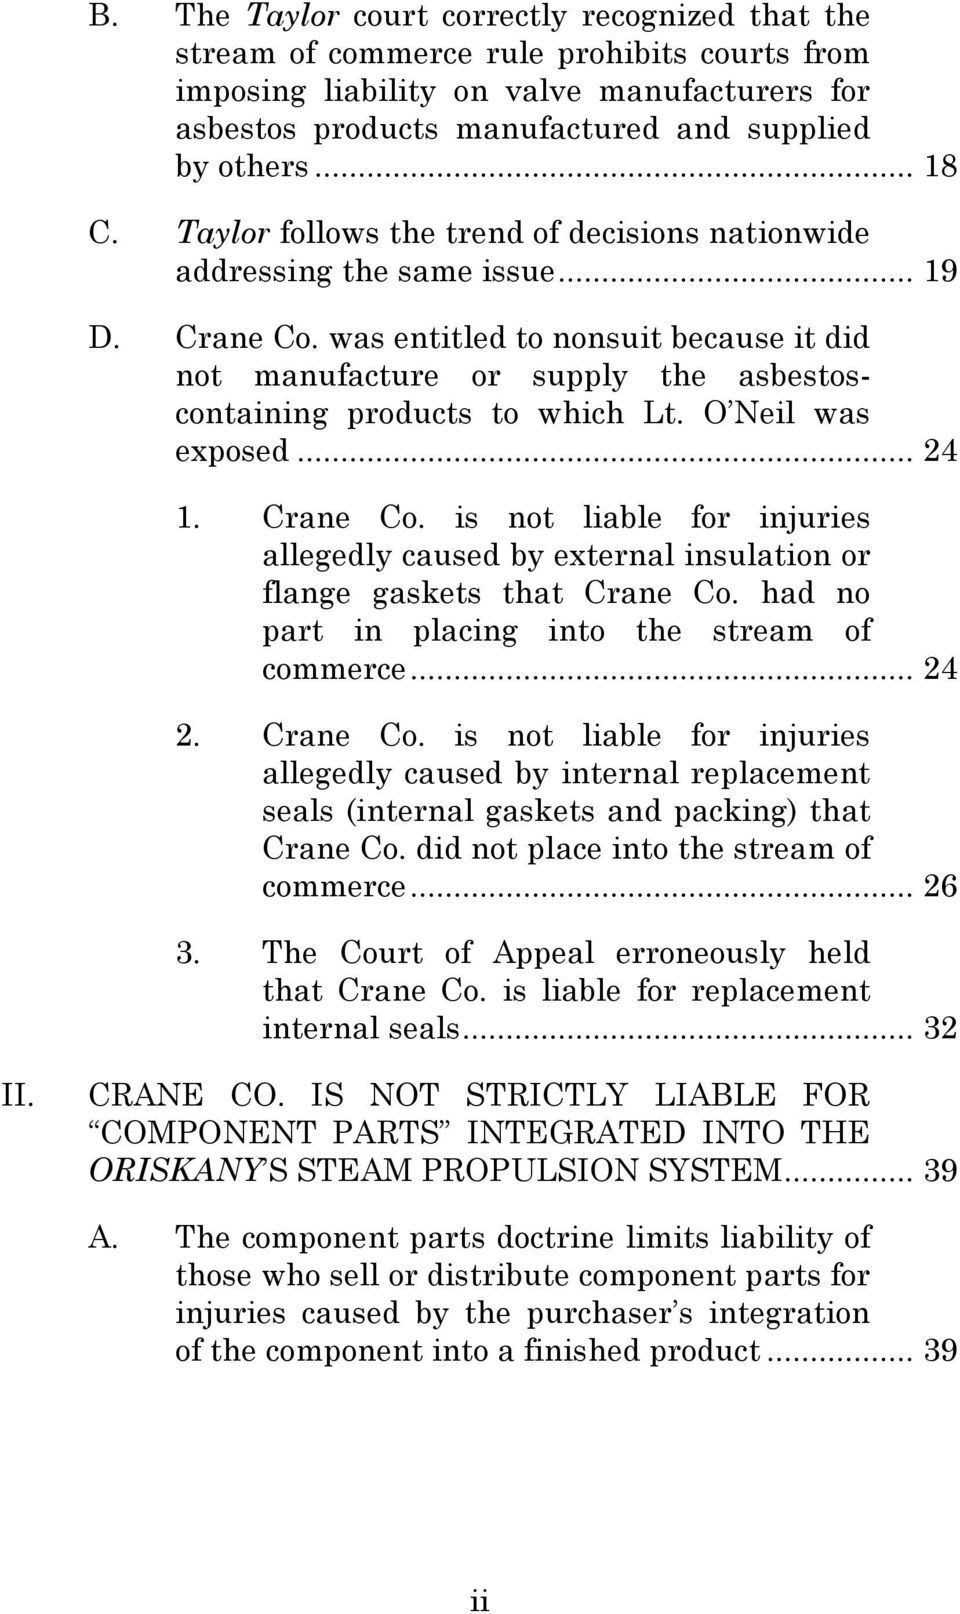 was entitled to nonsuit because it did not manufacture or supply the asbestoscontaining products to which Lt. O Neil was exposed... 24 1. Crane Co.